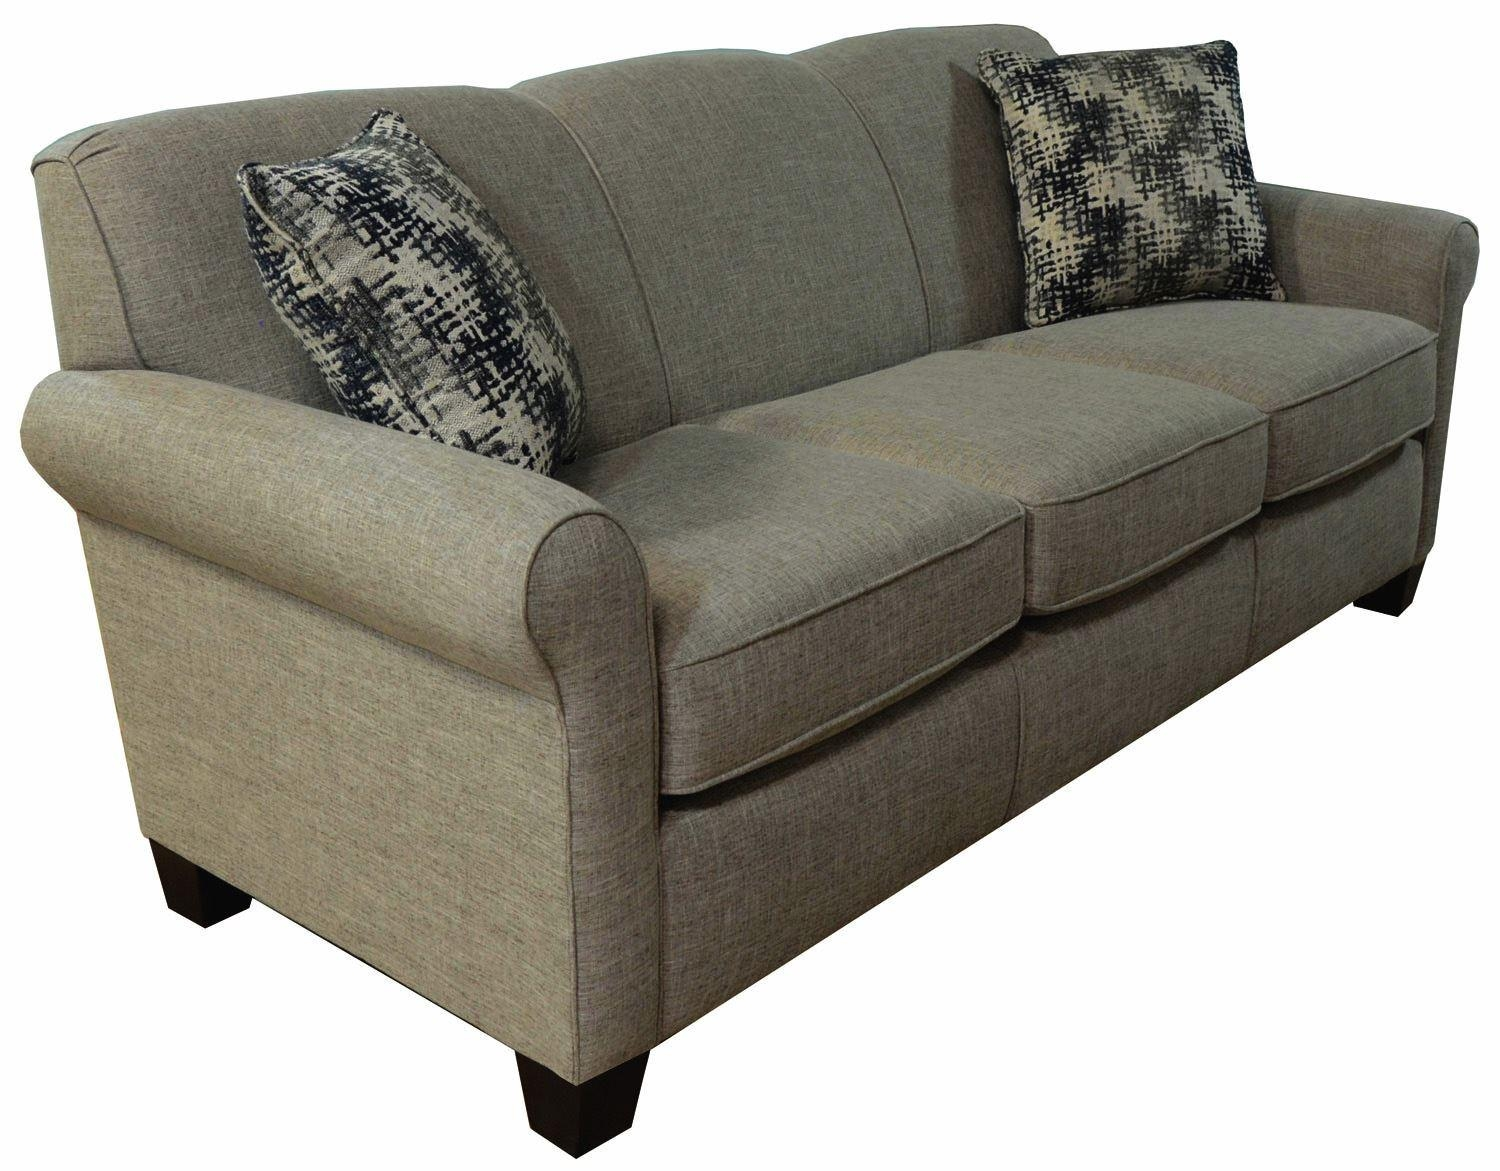 Newport Sofa, Frontroom Express – Frontroom Furnishings Regarding Newport Sofas (Image 14 of 20)